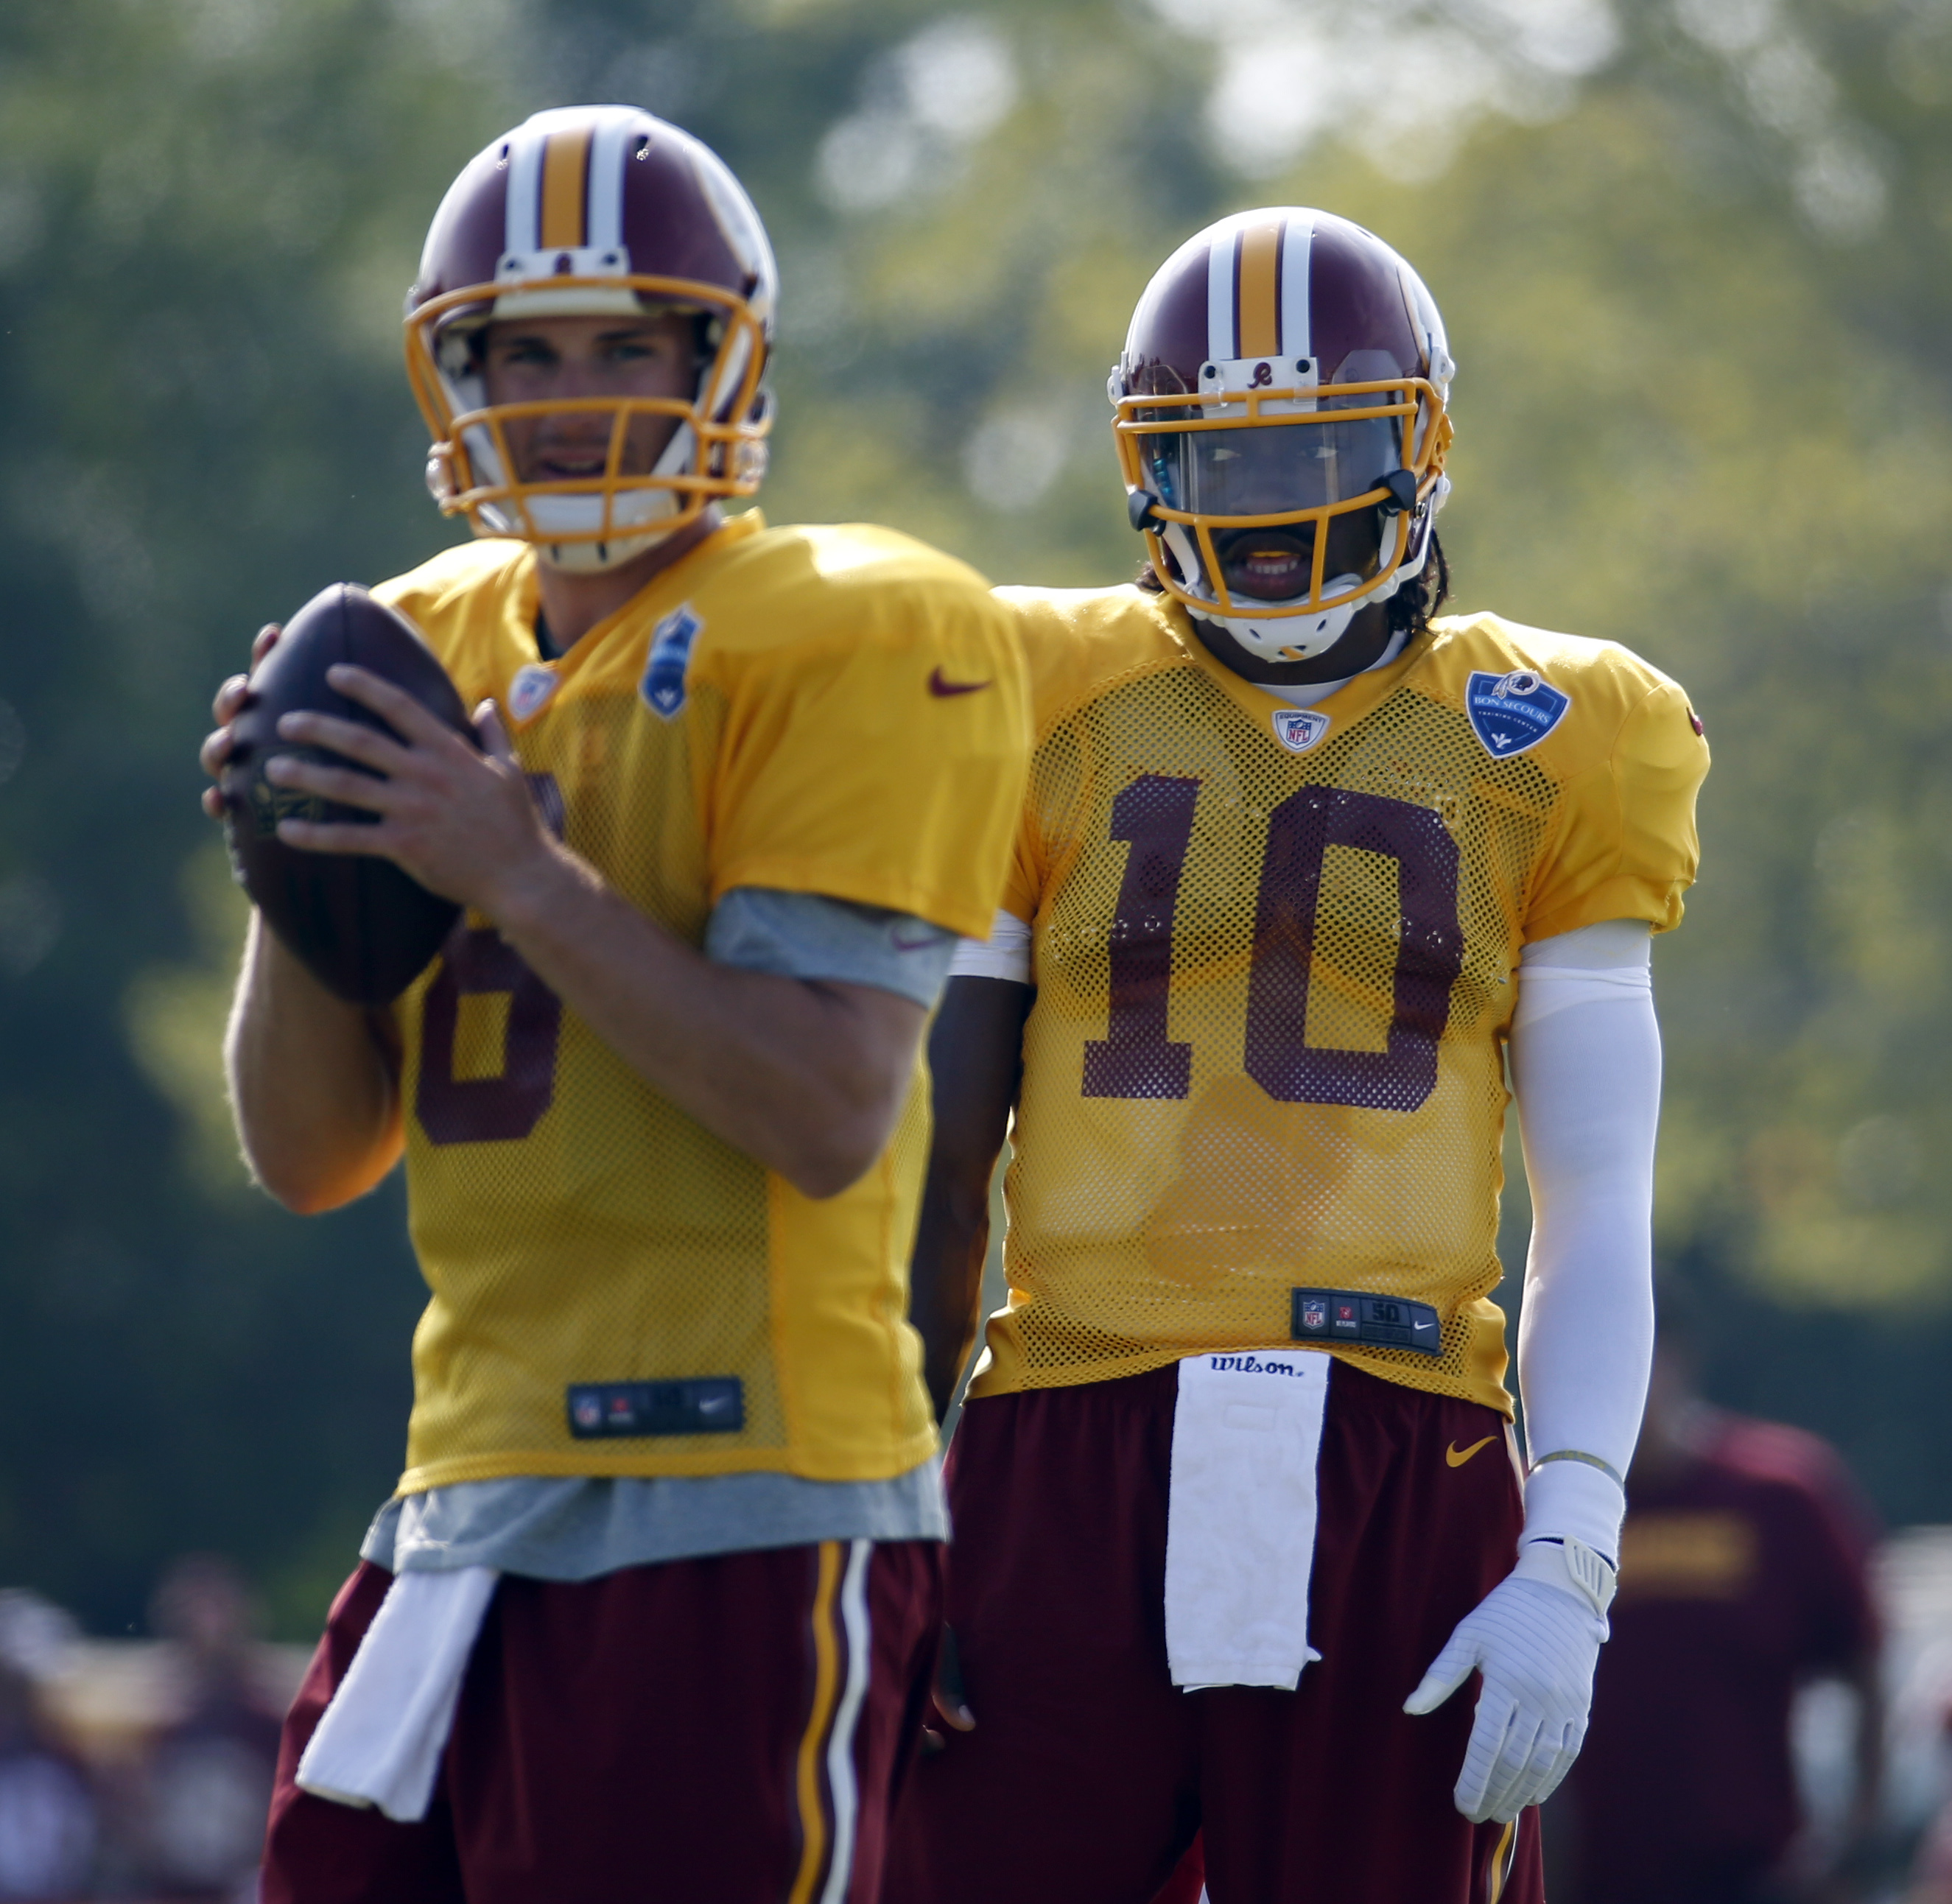 FILE - In this July 26, 2014, file photo, Washington Redskins quarterback Kirk Cousins prepares to pass as quarterback Robert Griffin III watches during practice at the team's NFL football training facility in Richmond, Va. The Washington Redskins have ma